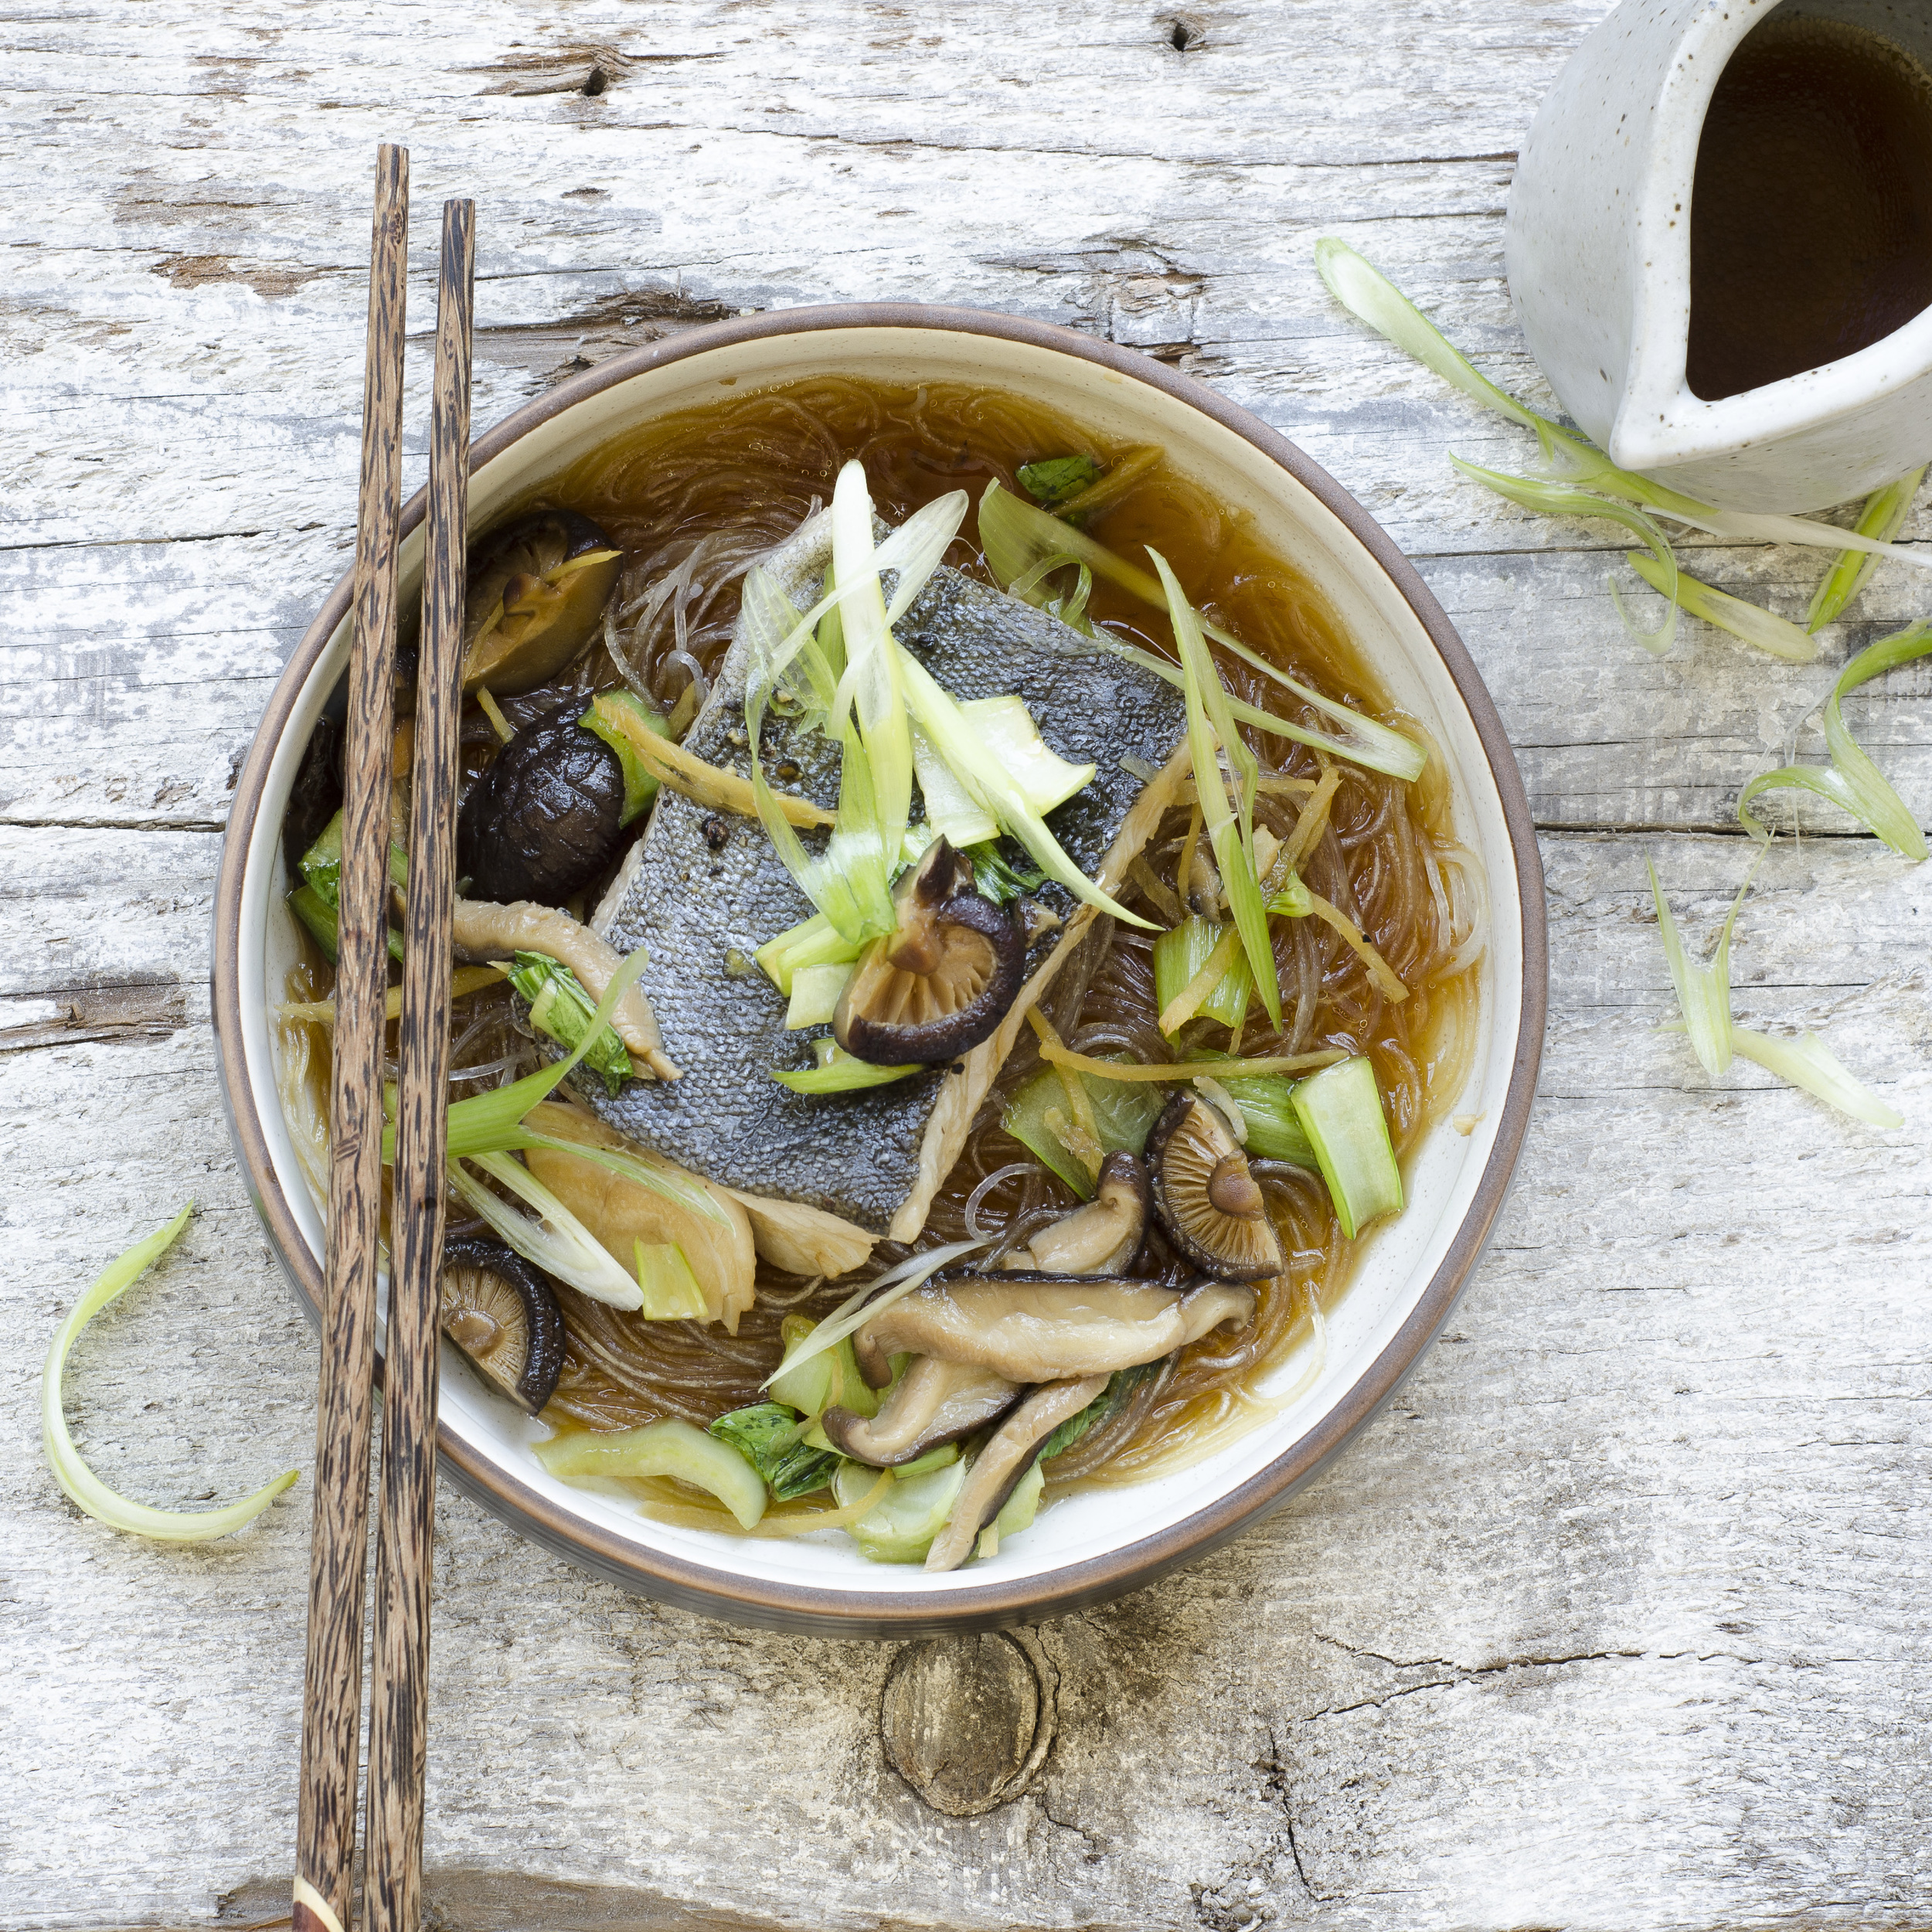 Braised Fish with Bok Choy in Shiitake Broth